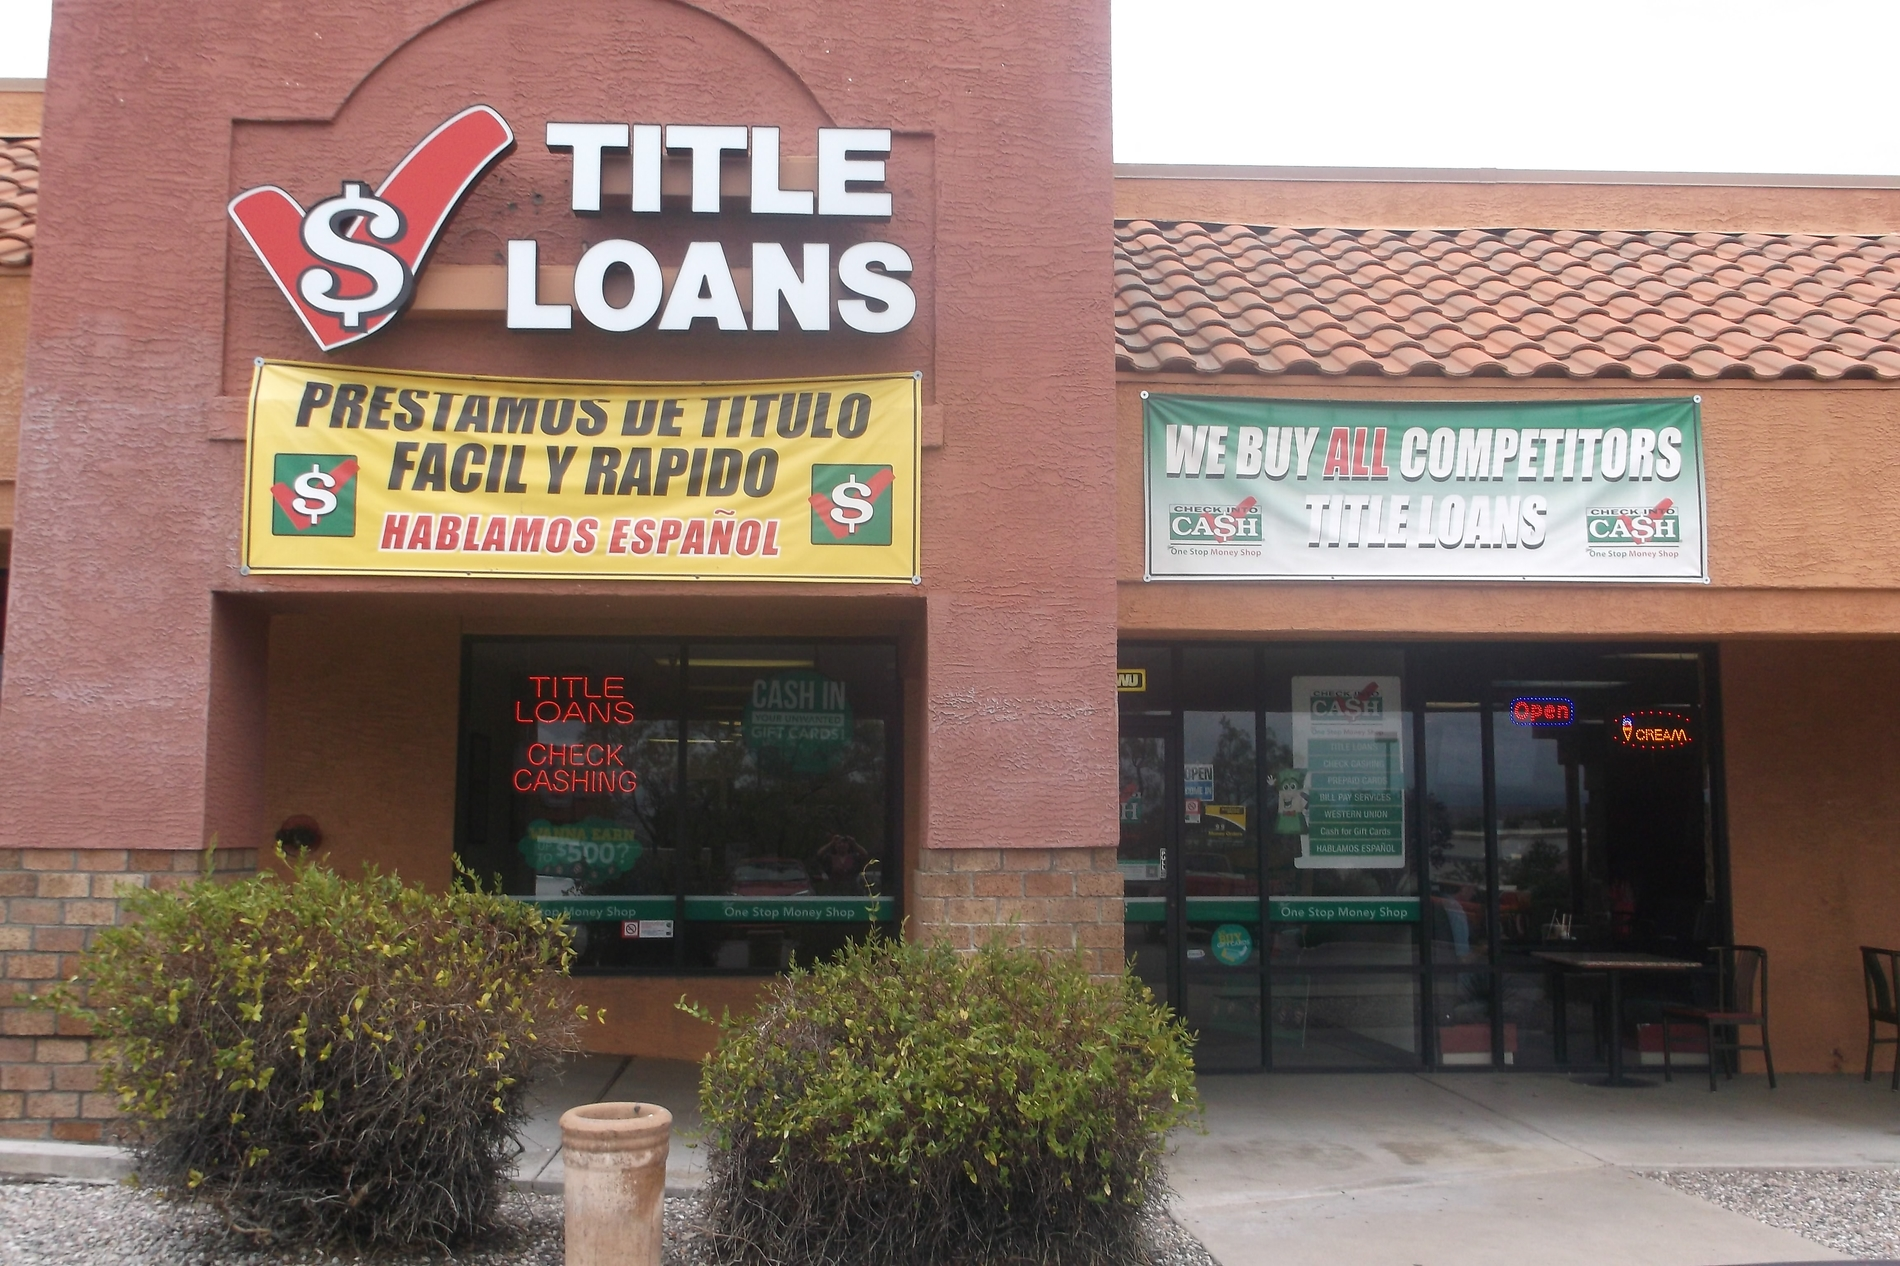 Payday loan places in austin texas photo 8